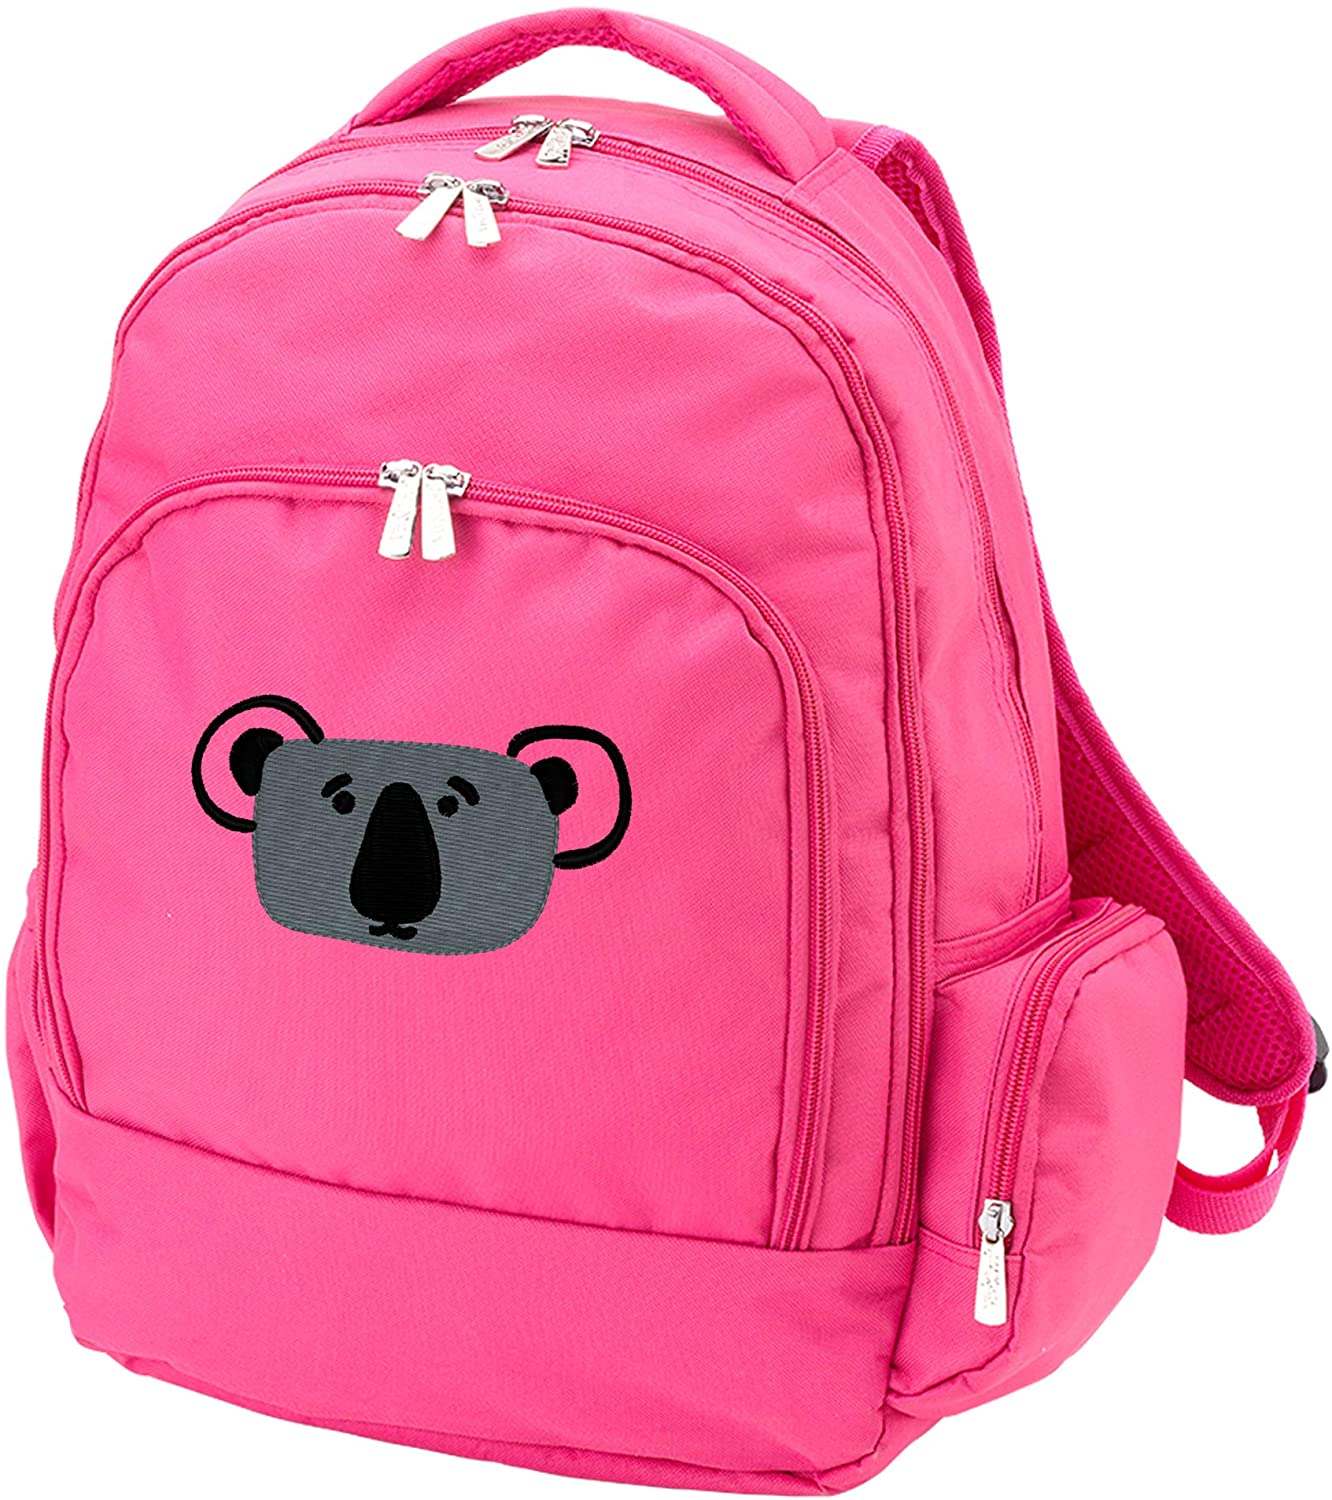 Personalized Kids Backpack with Cute Animal Design | Back to School Kids Gift(Koala/hotpink)